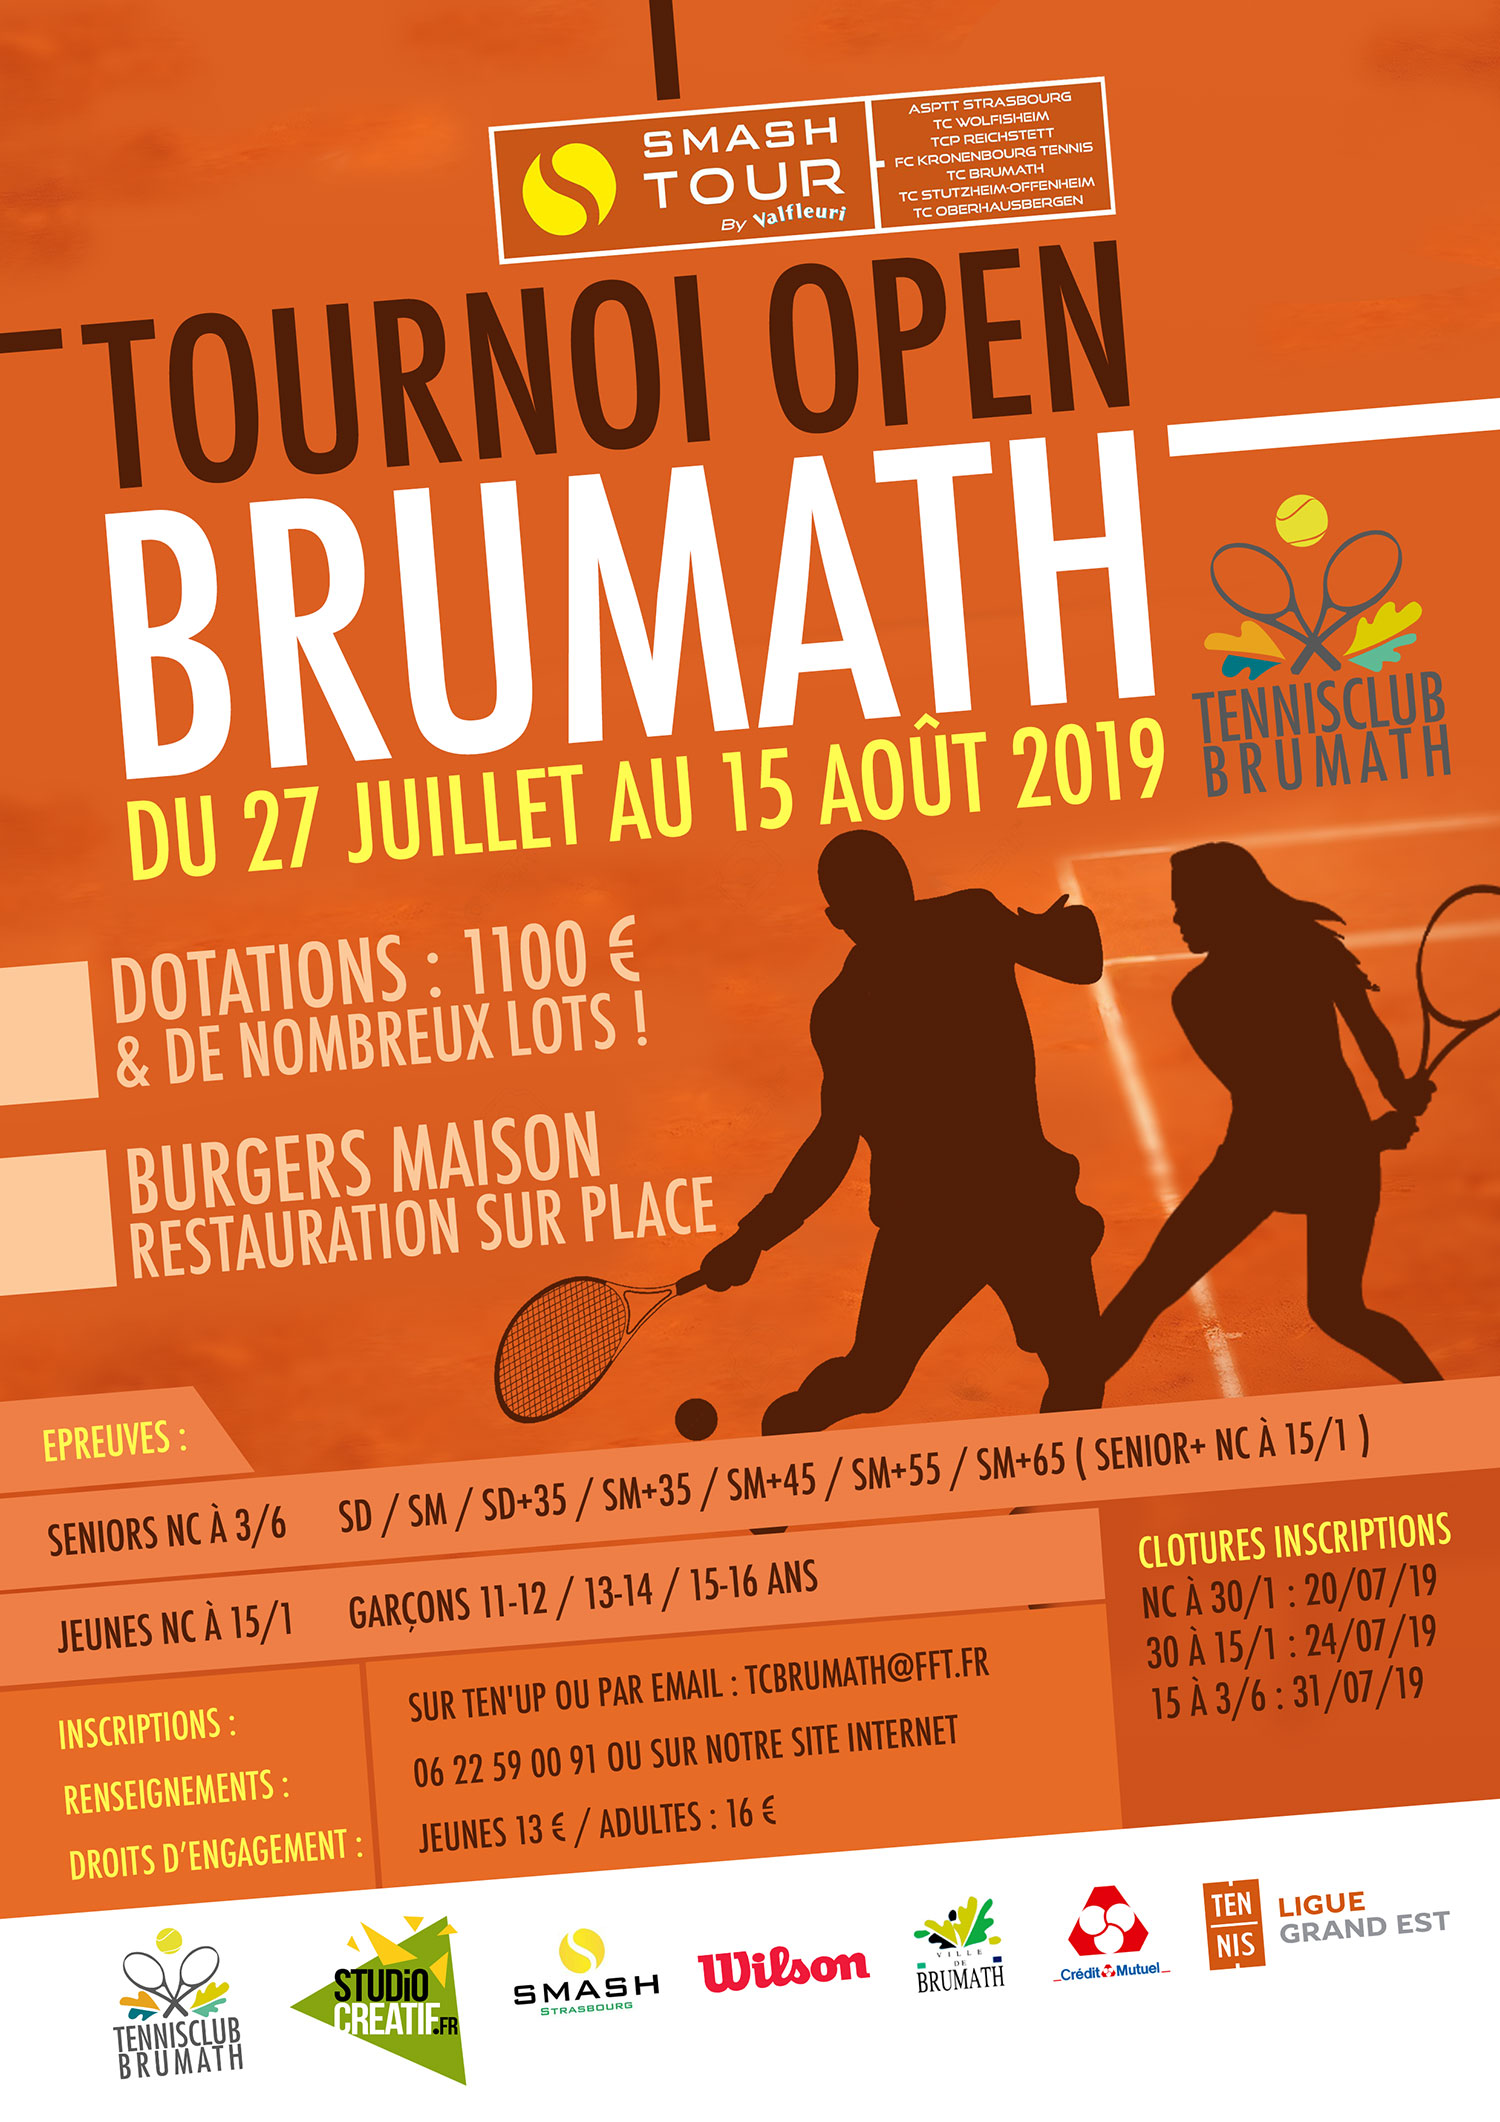 Tournoi tennis Brumath open